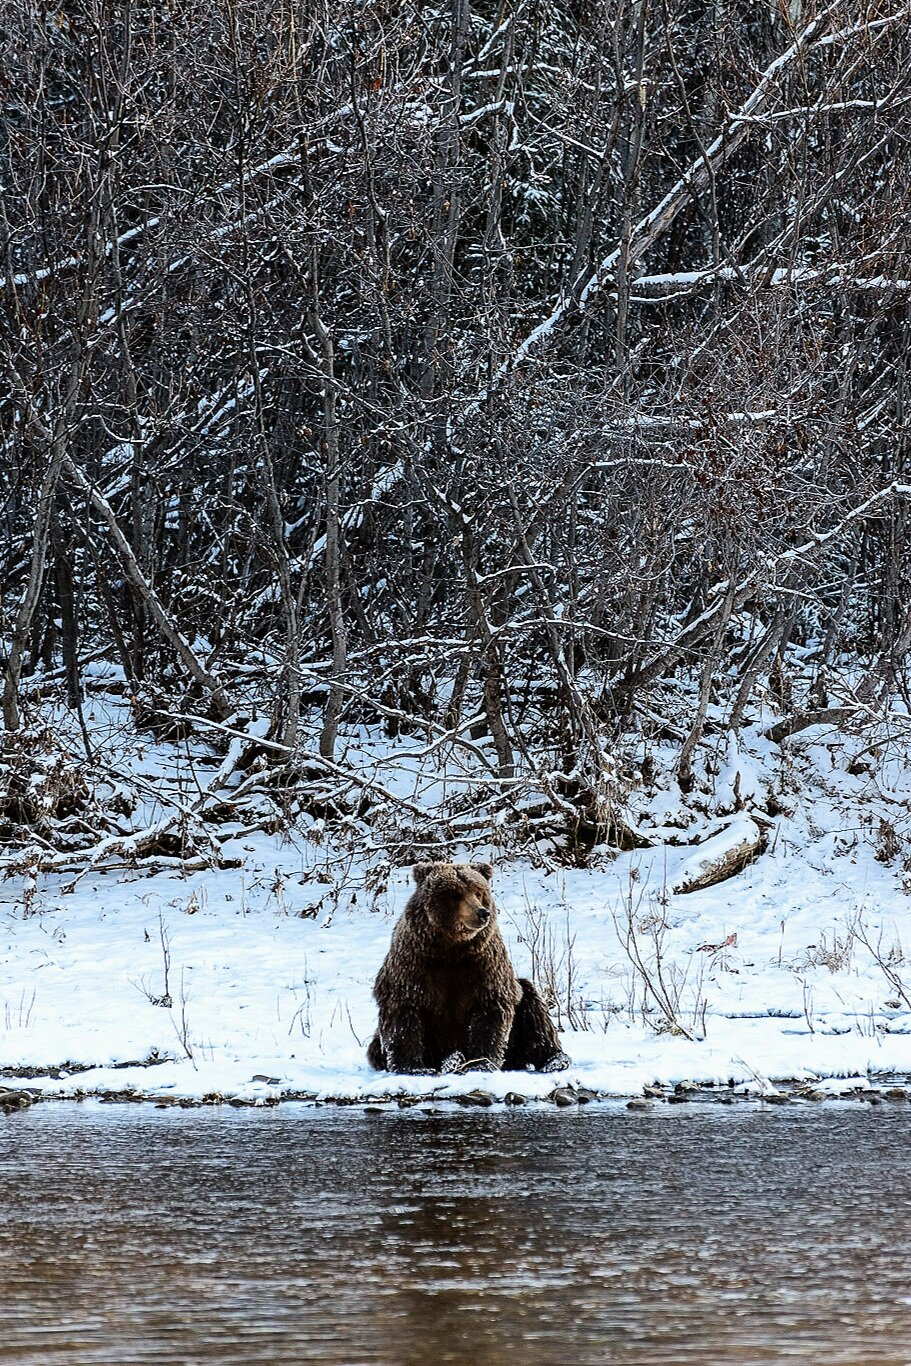 Ice Grizzly Sitting on a Snowy Riverbank 2 - Yukon Territory, Canada